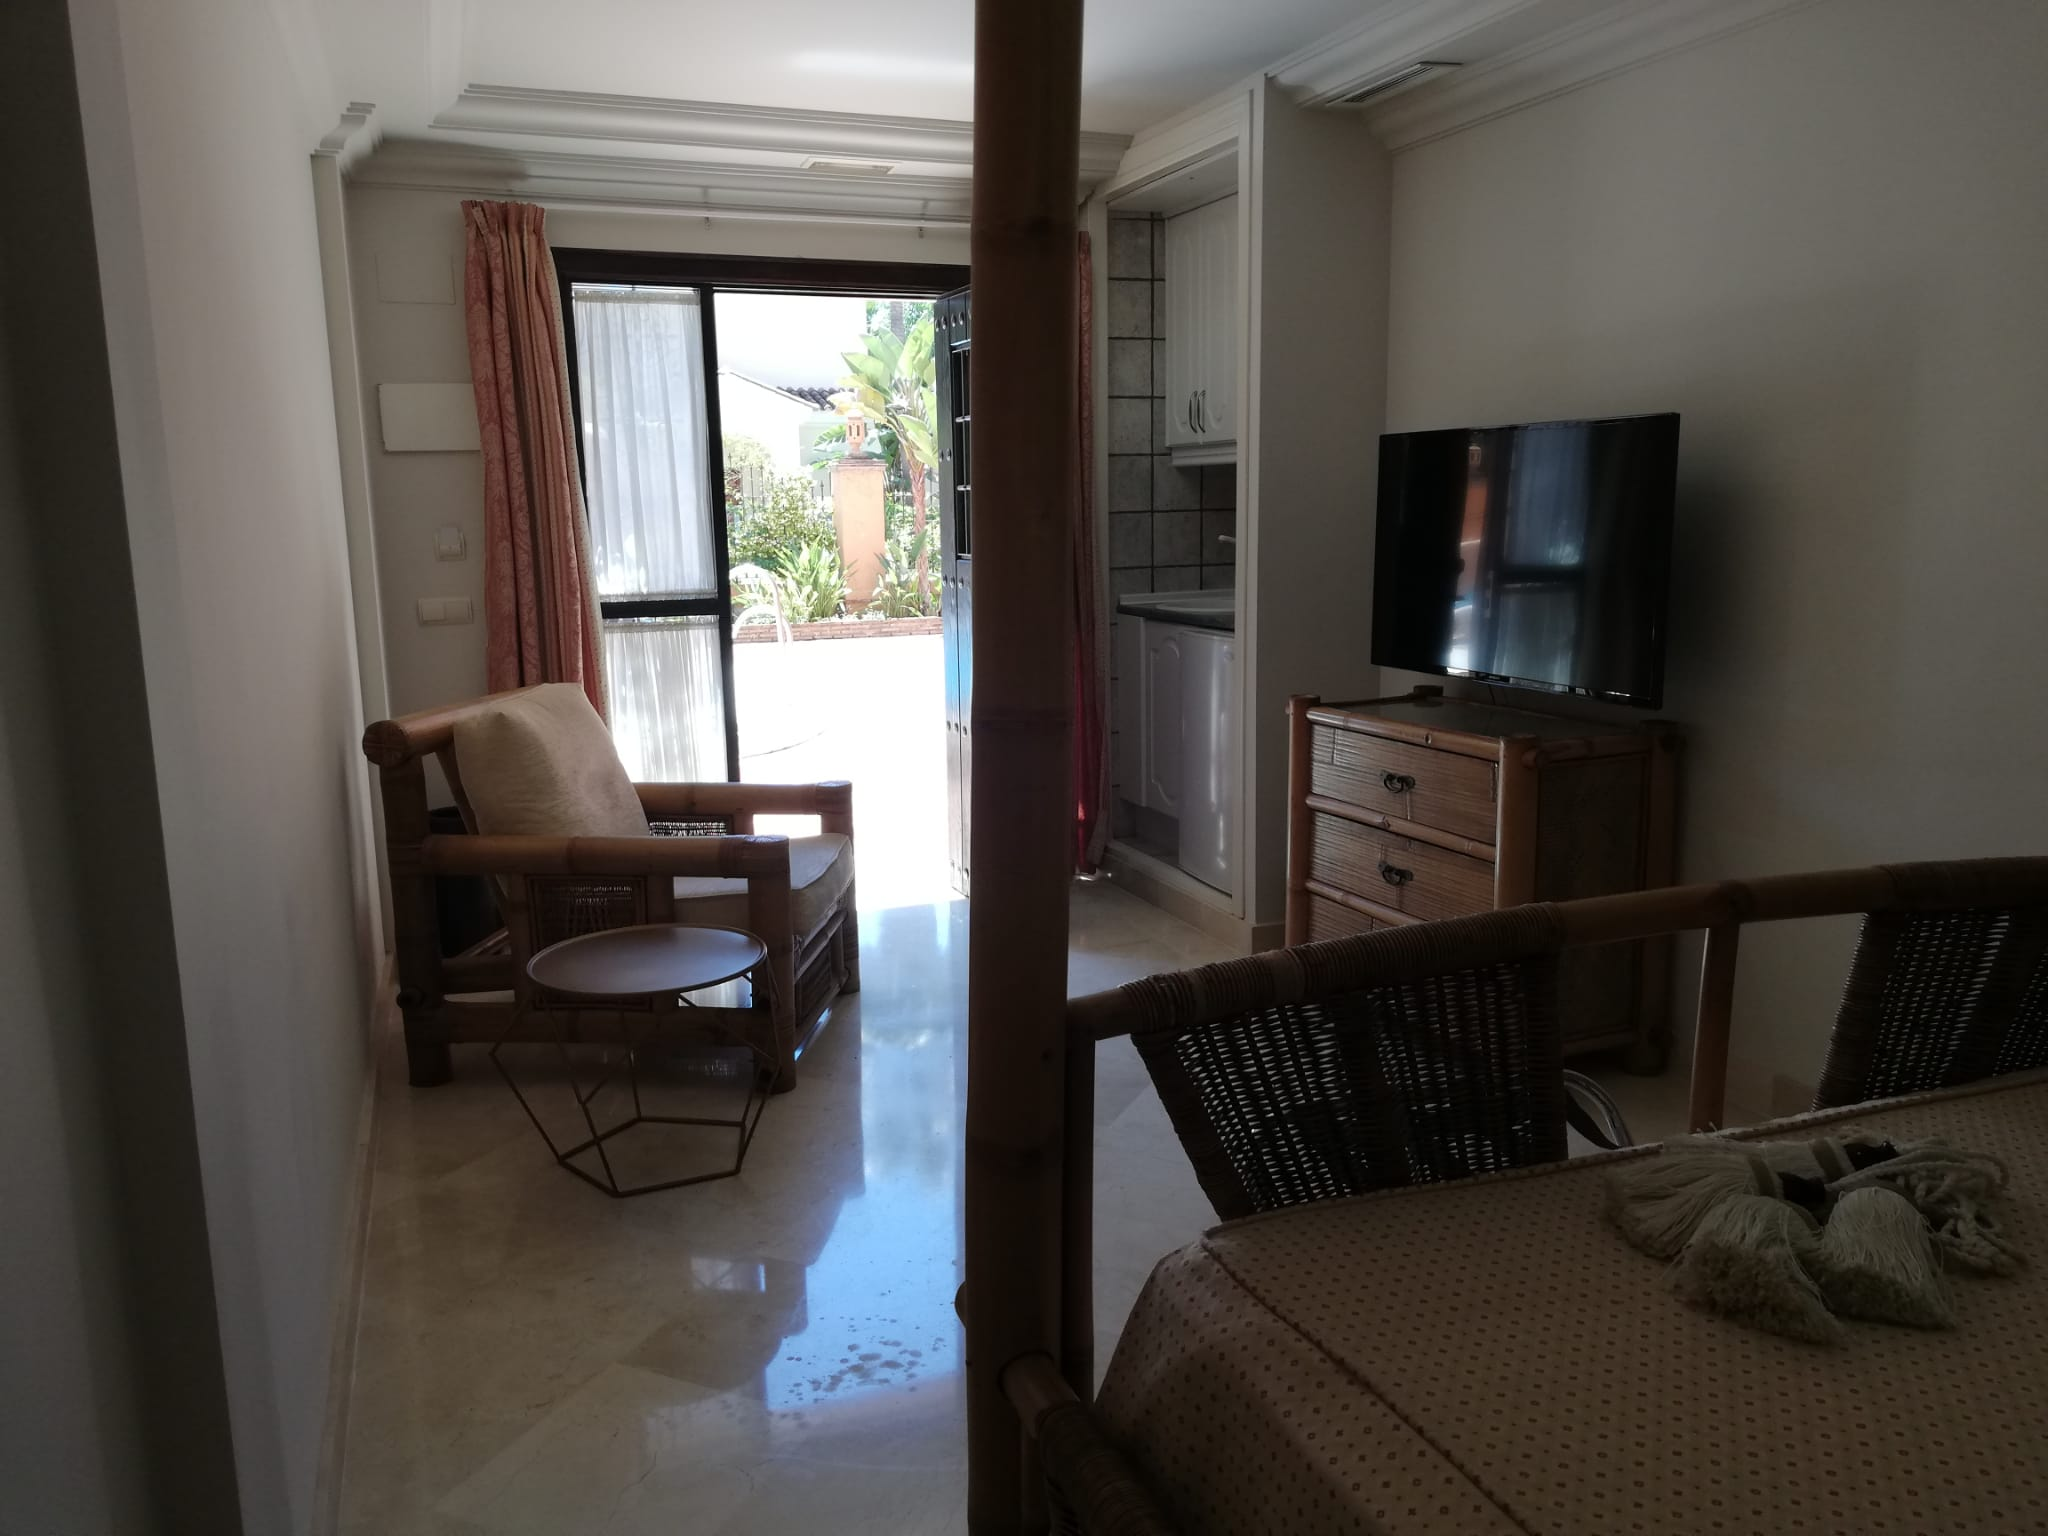 Studio for rent in Cancelada near the sea - mibgroup.es